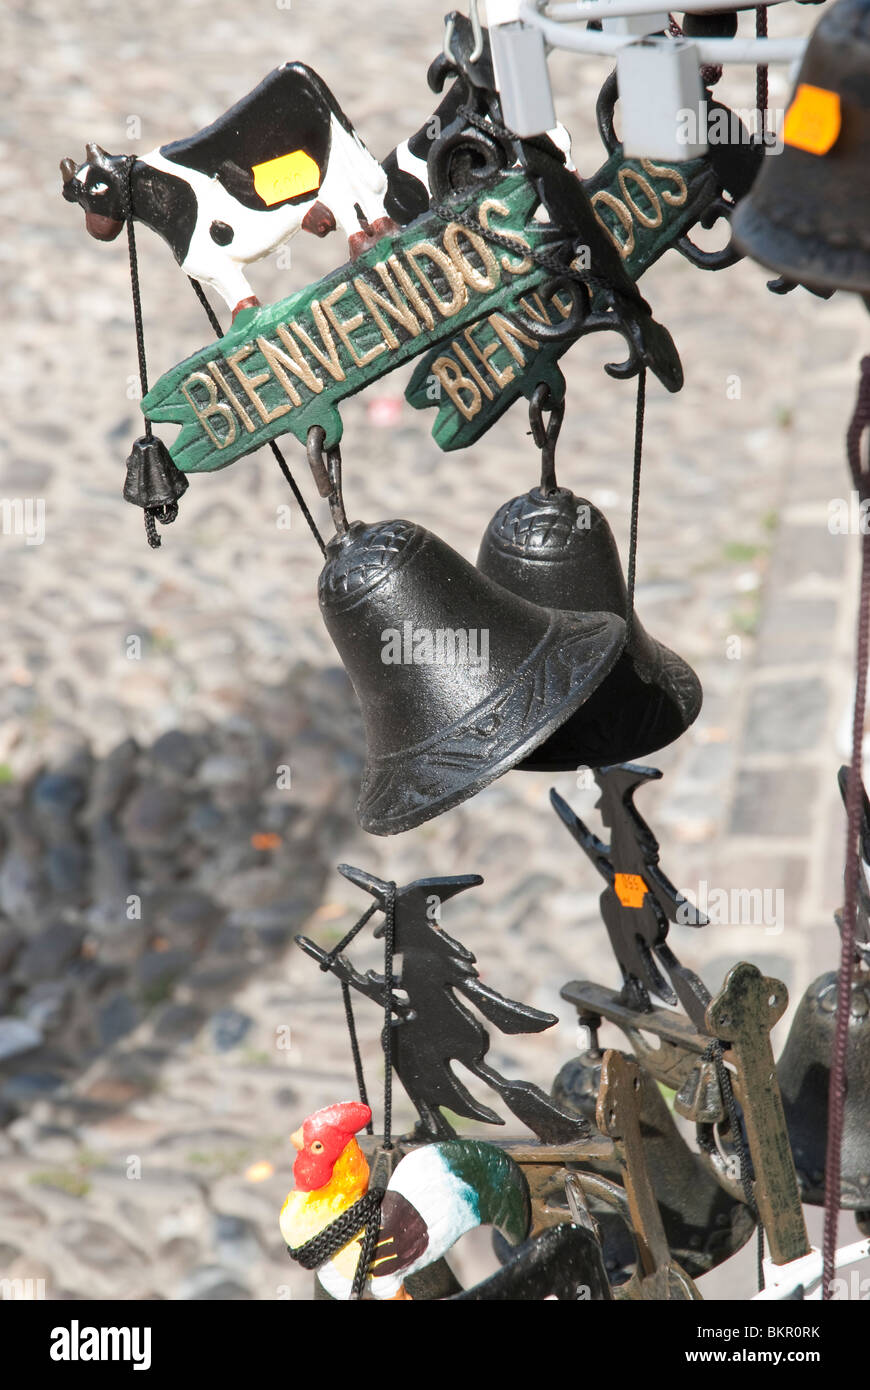 Tourist Souvenirs in the town of Potes, Picos de Europa, Northern Spain - Stock Image